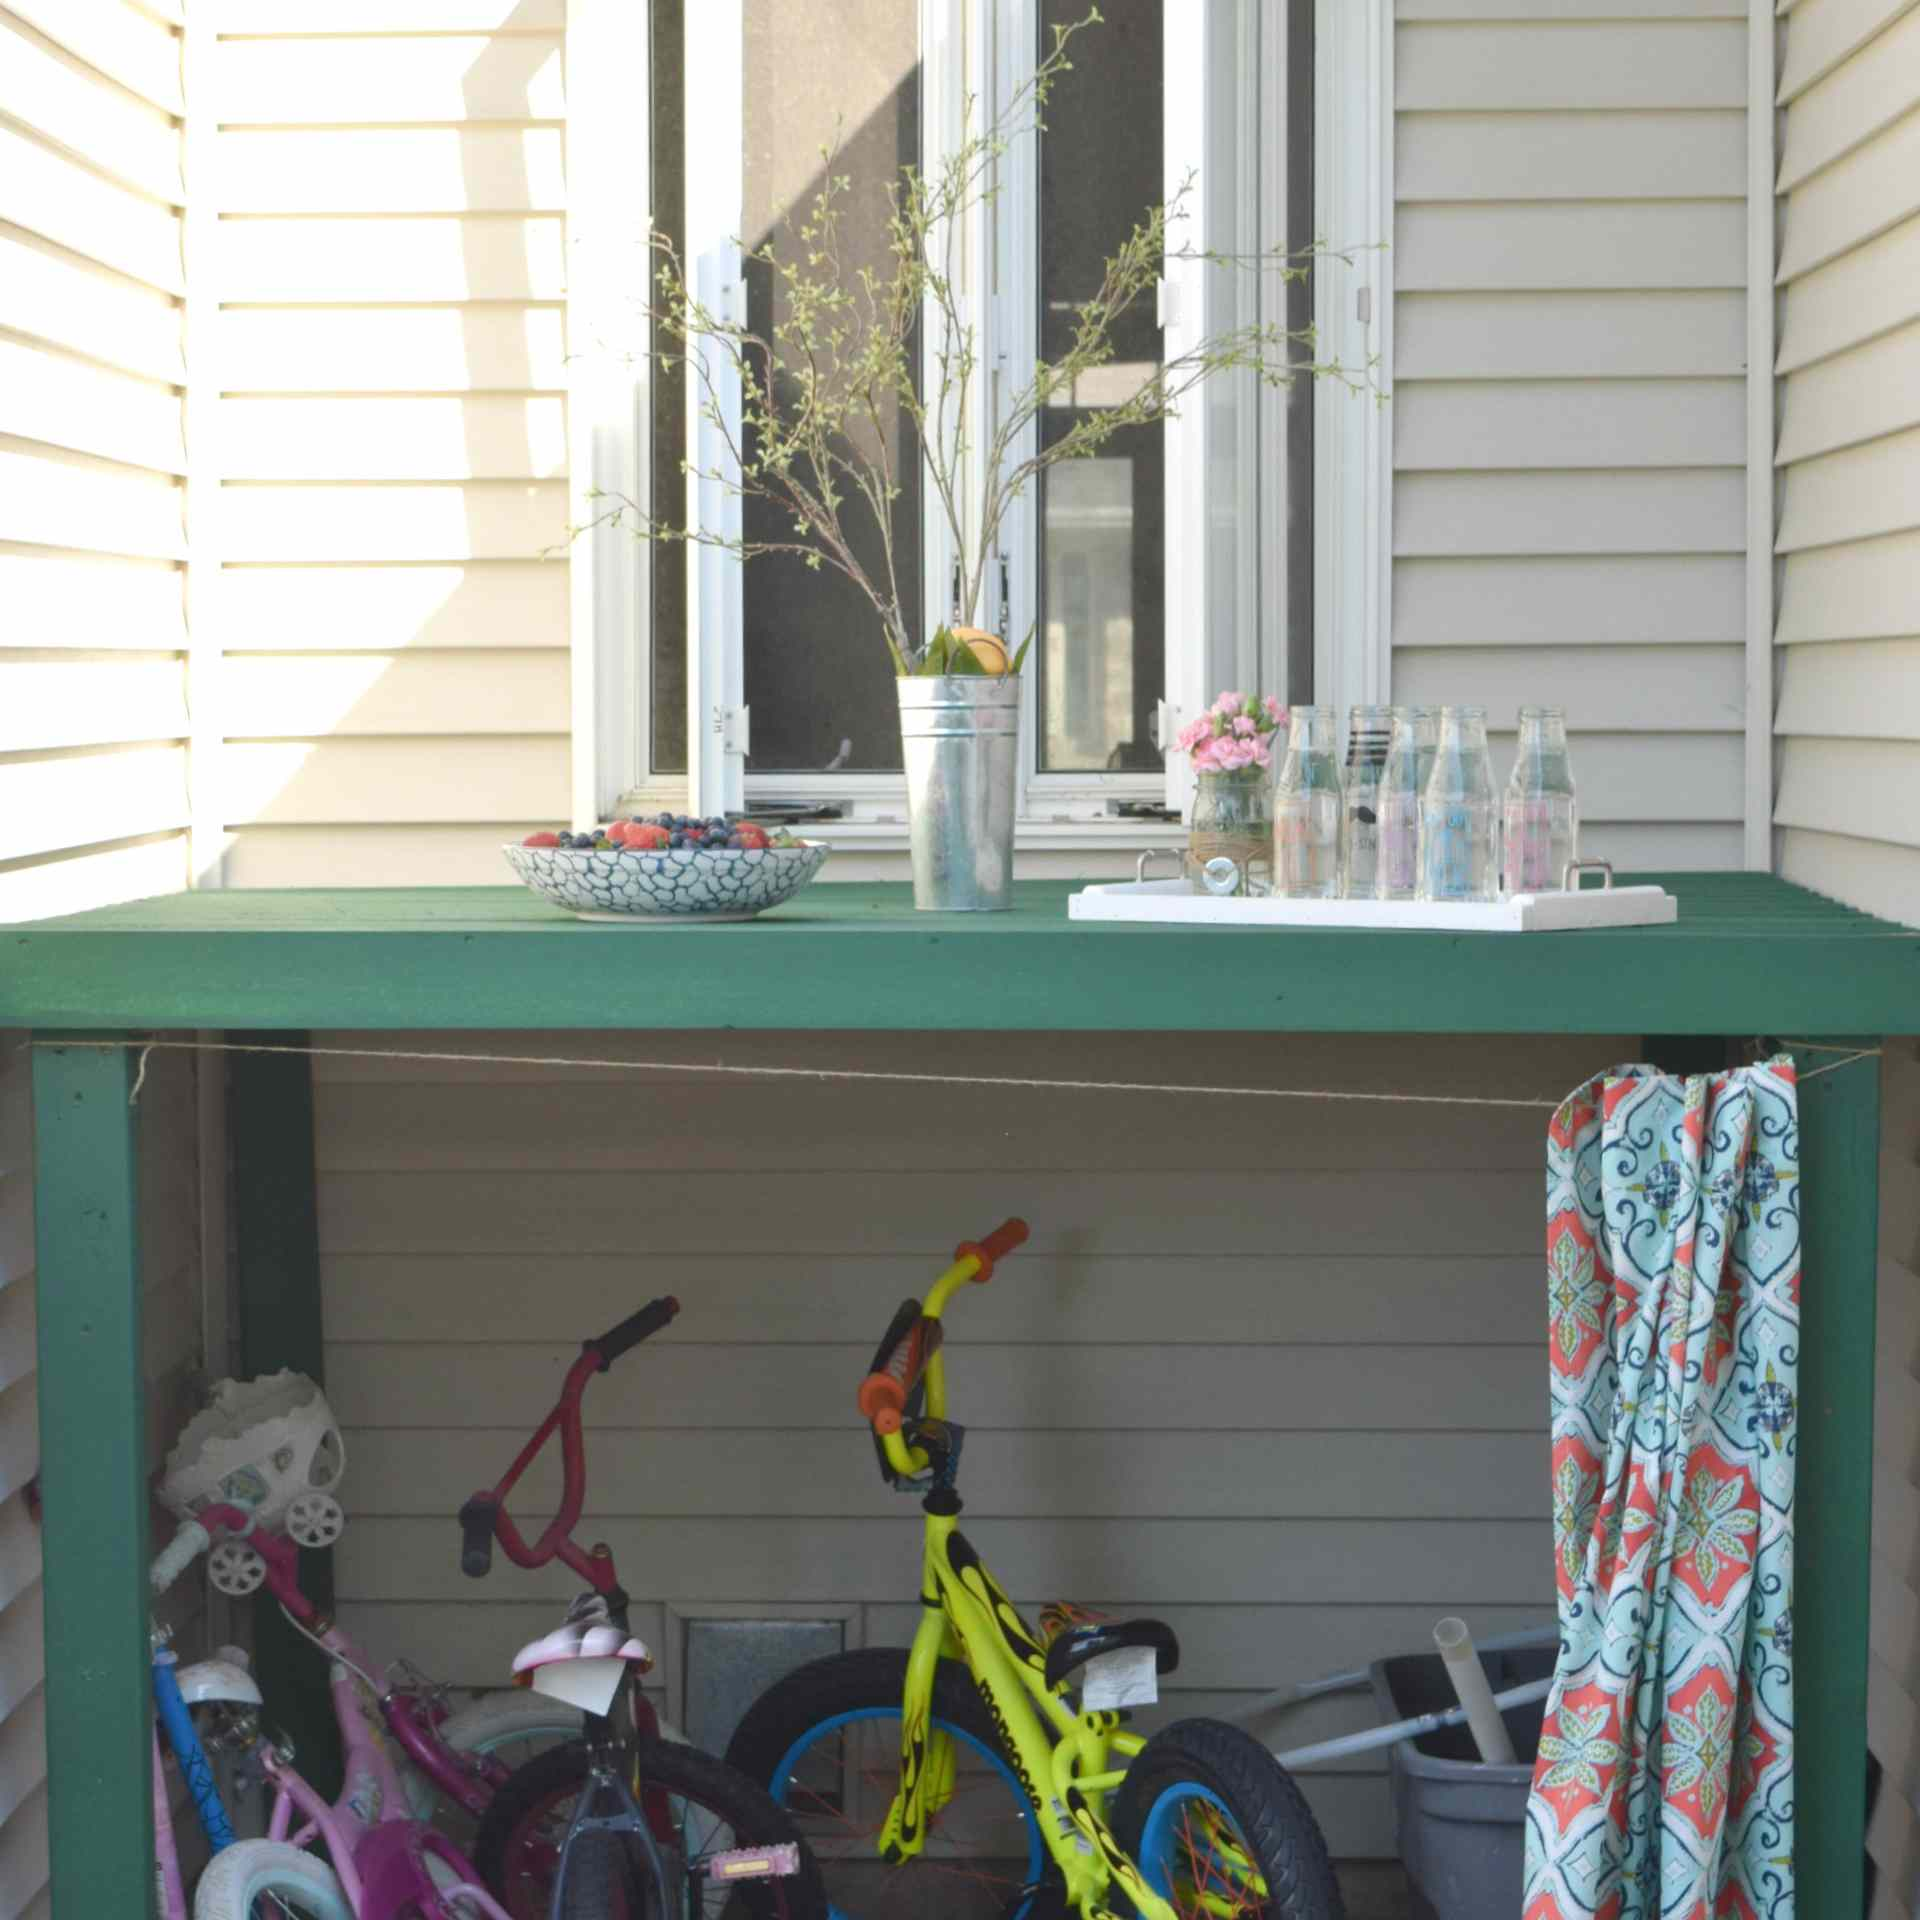 An outdoor table with bikes underneath